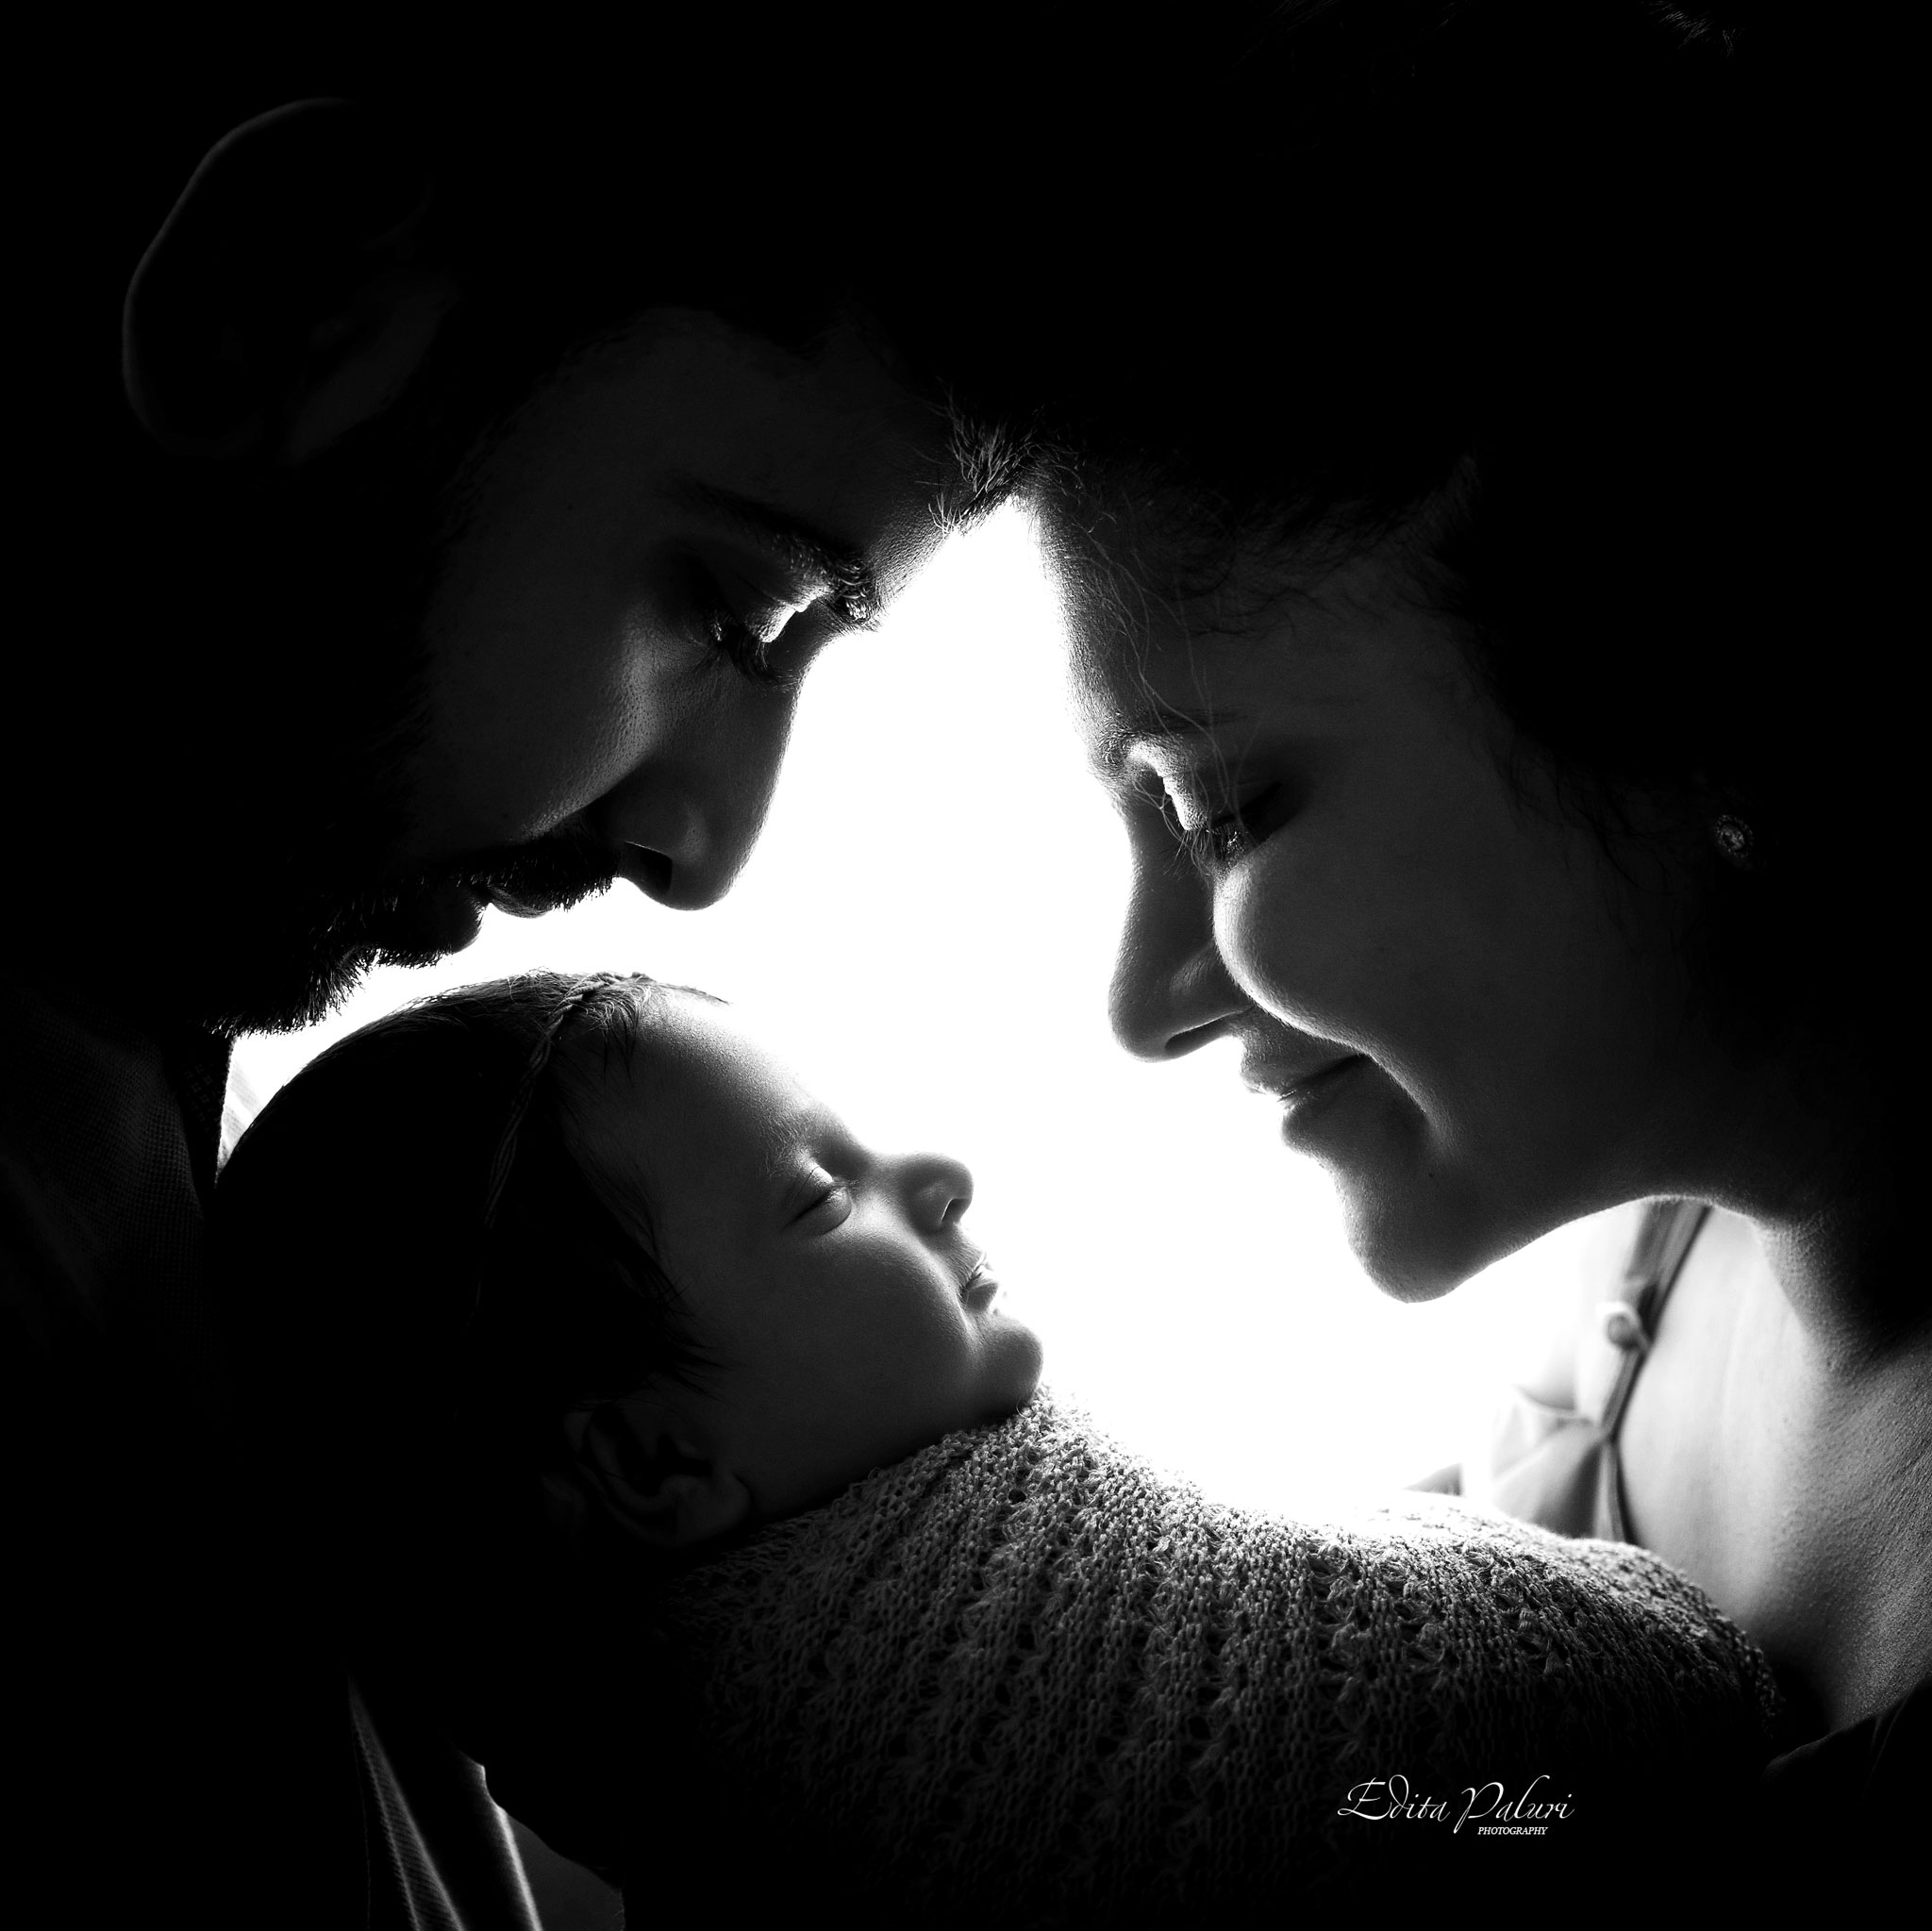 Black and white family silhouette